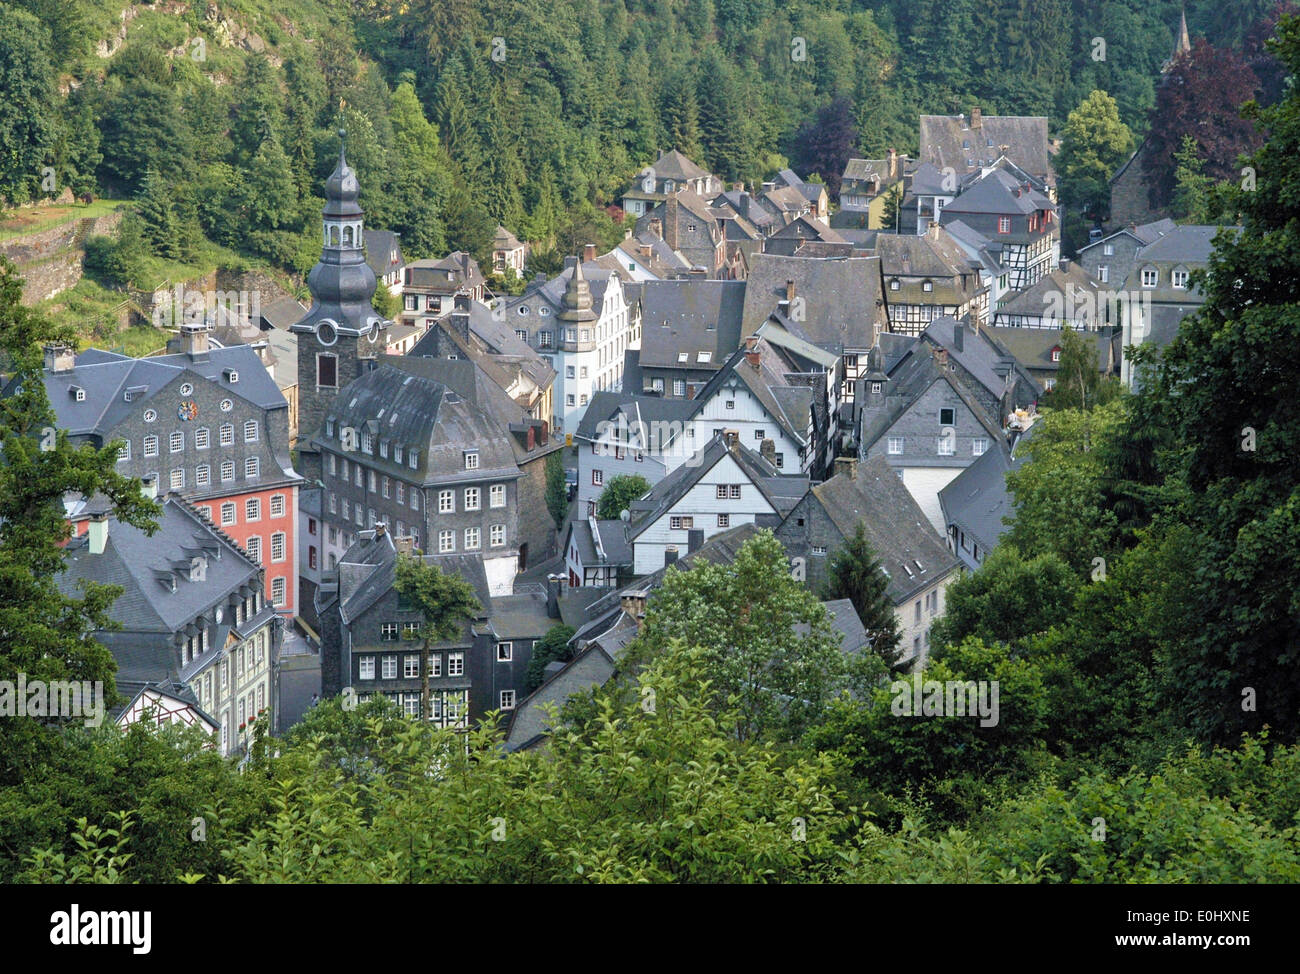 germany monschau city viewpoint deutschland monschau stadt stock photo royalty free image. Black Bedroom Furniture Sets. Home Design Ideas